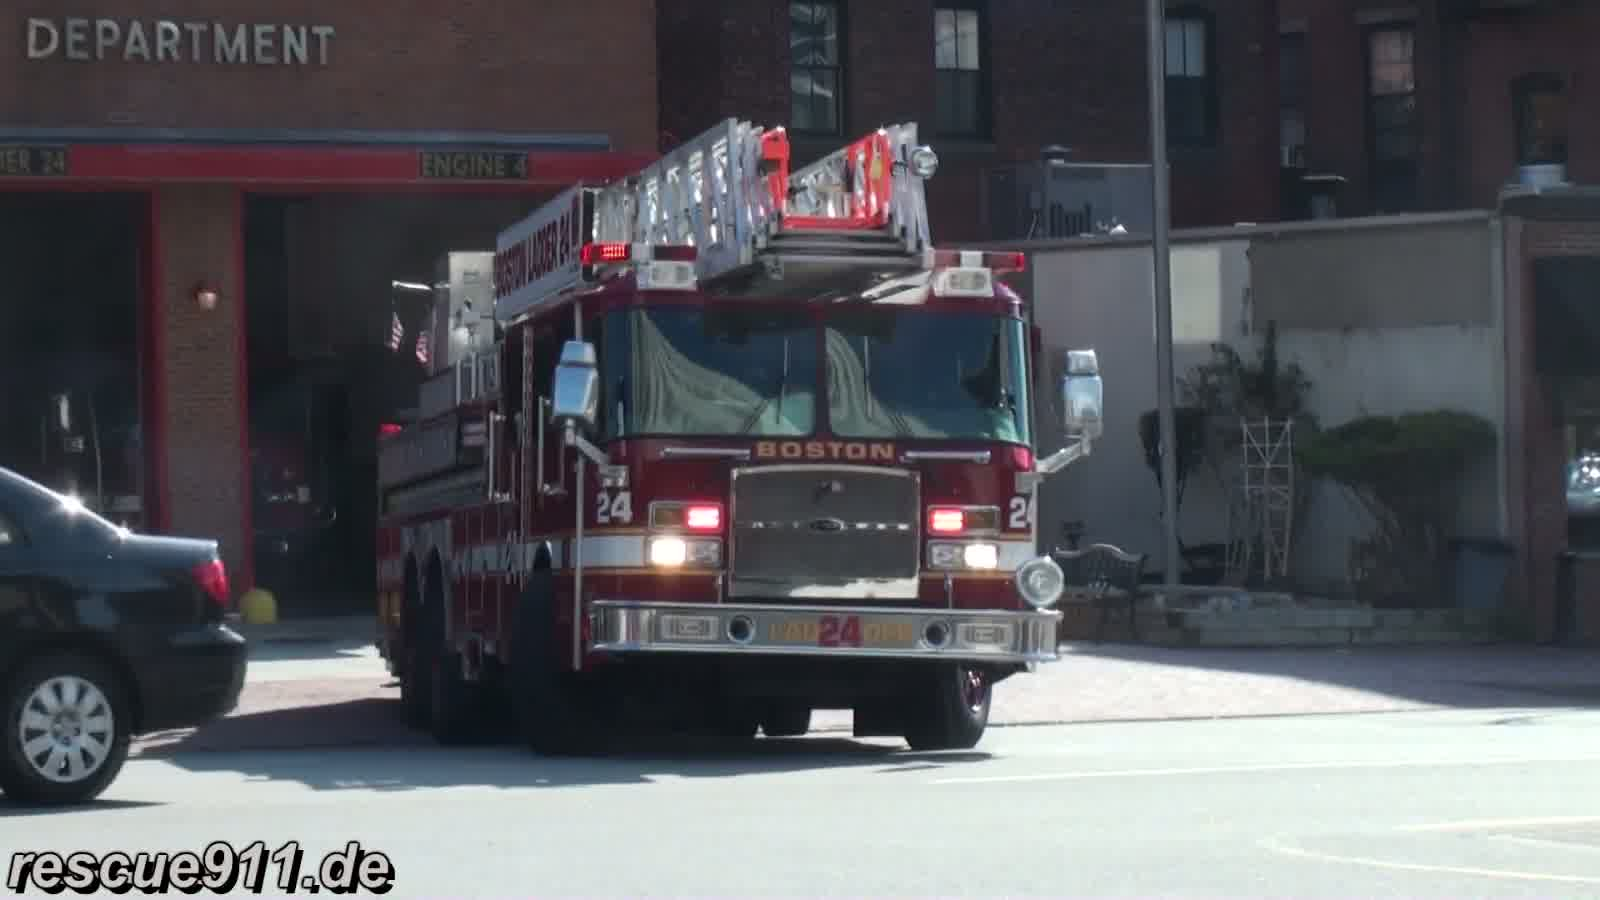 Ladder truck 24 Boston Fire Department (stream)